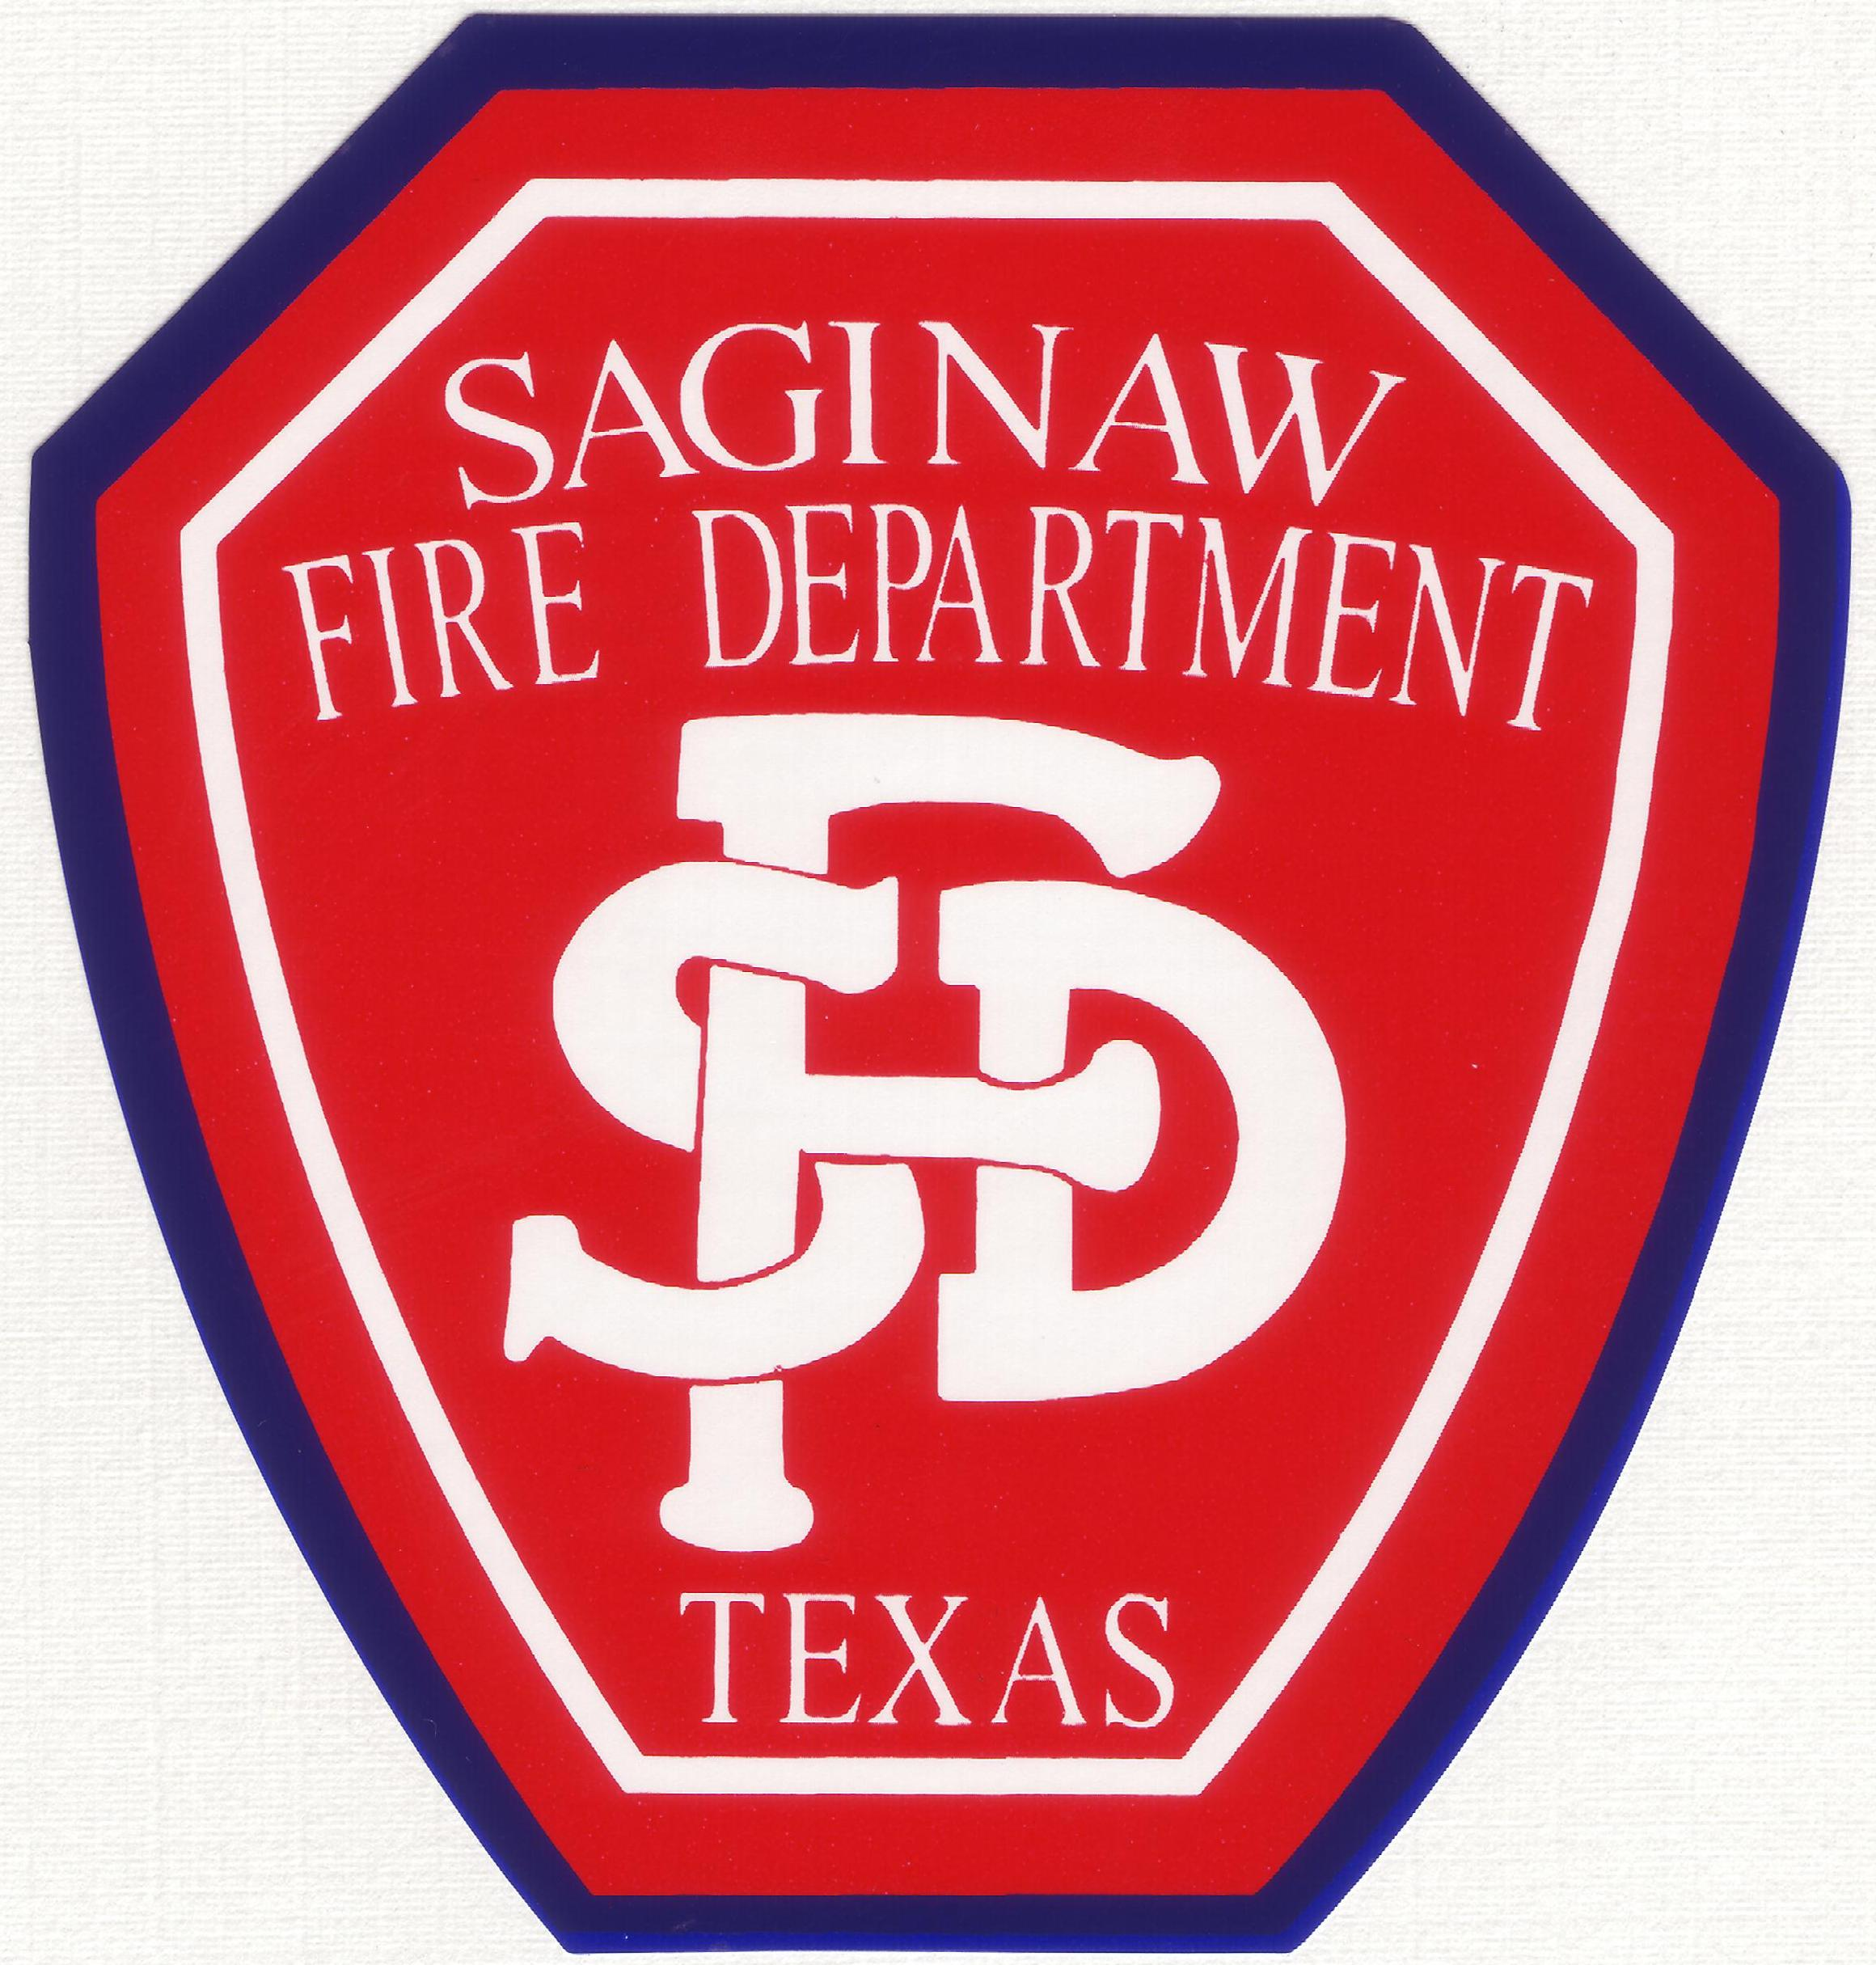 Saginaw Fire Department Texas